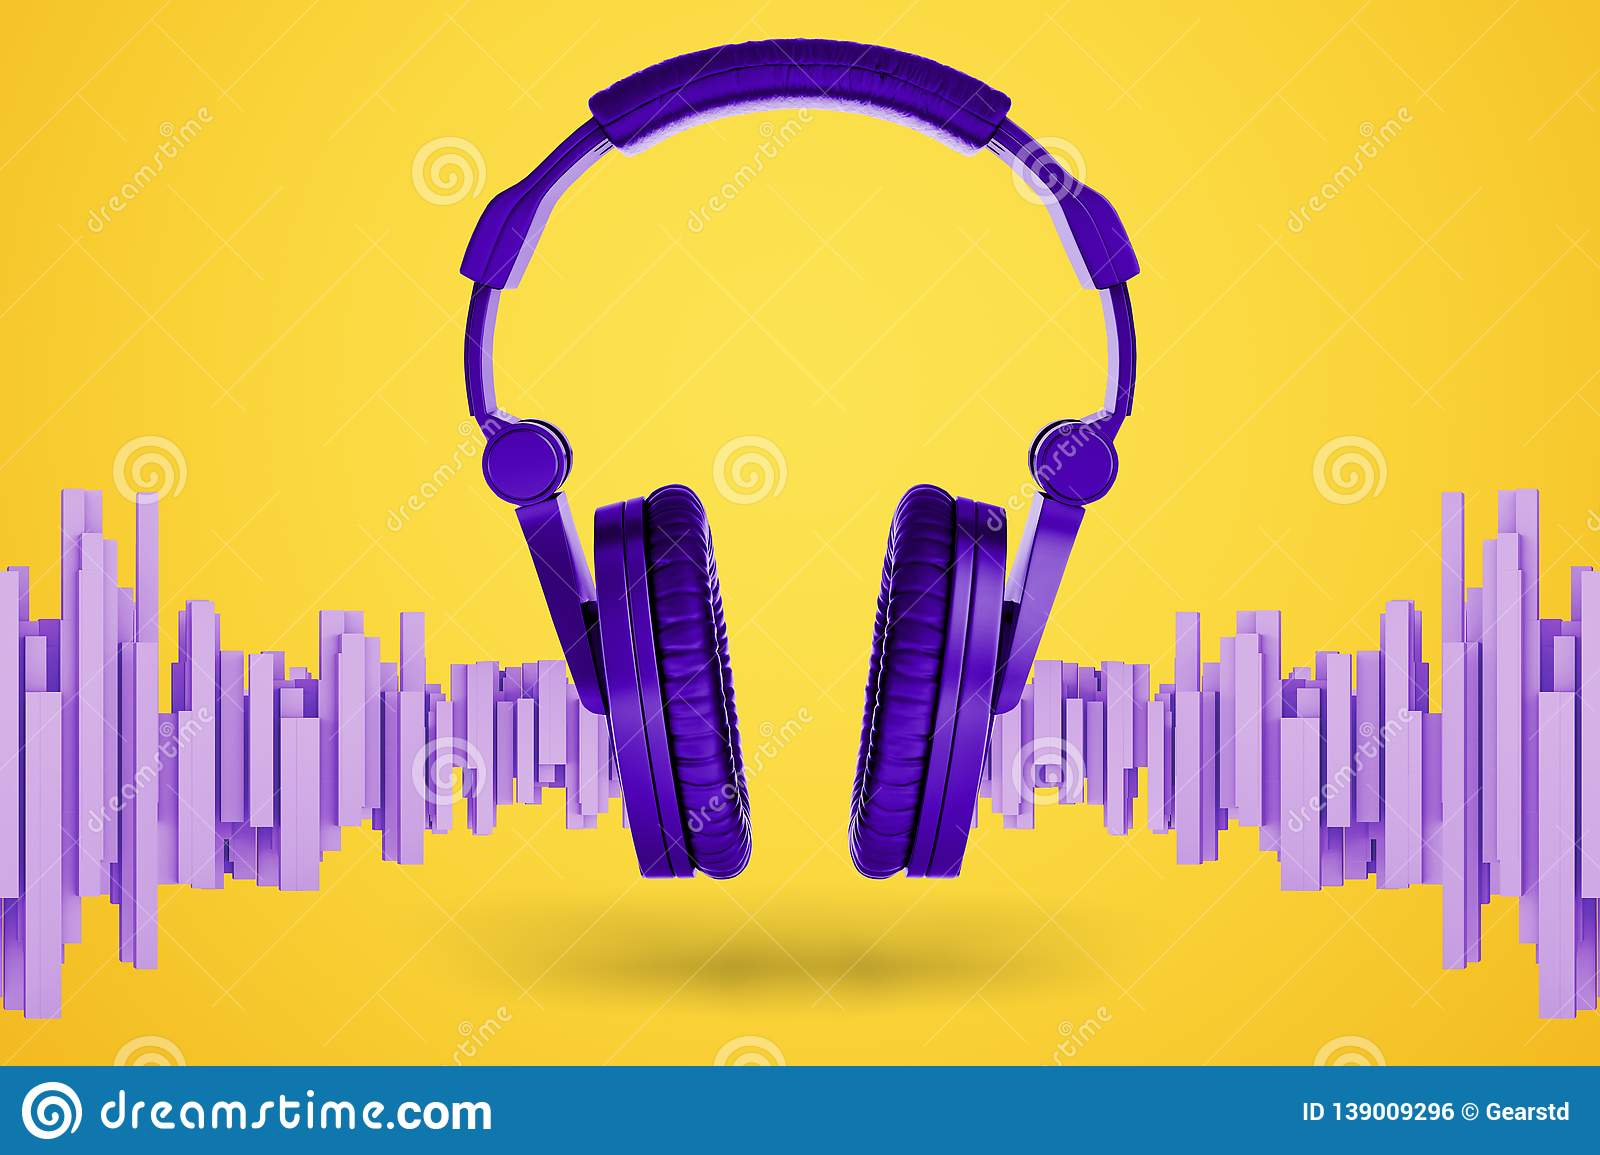 3d rendering of bright violet music headphones with soundwave-shaped blocks standing near them on a yellow background.